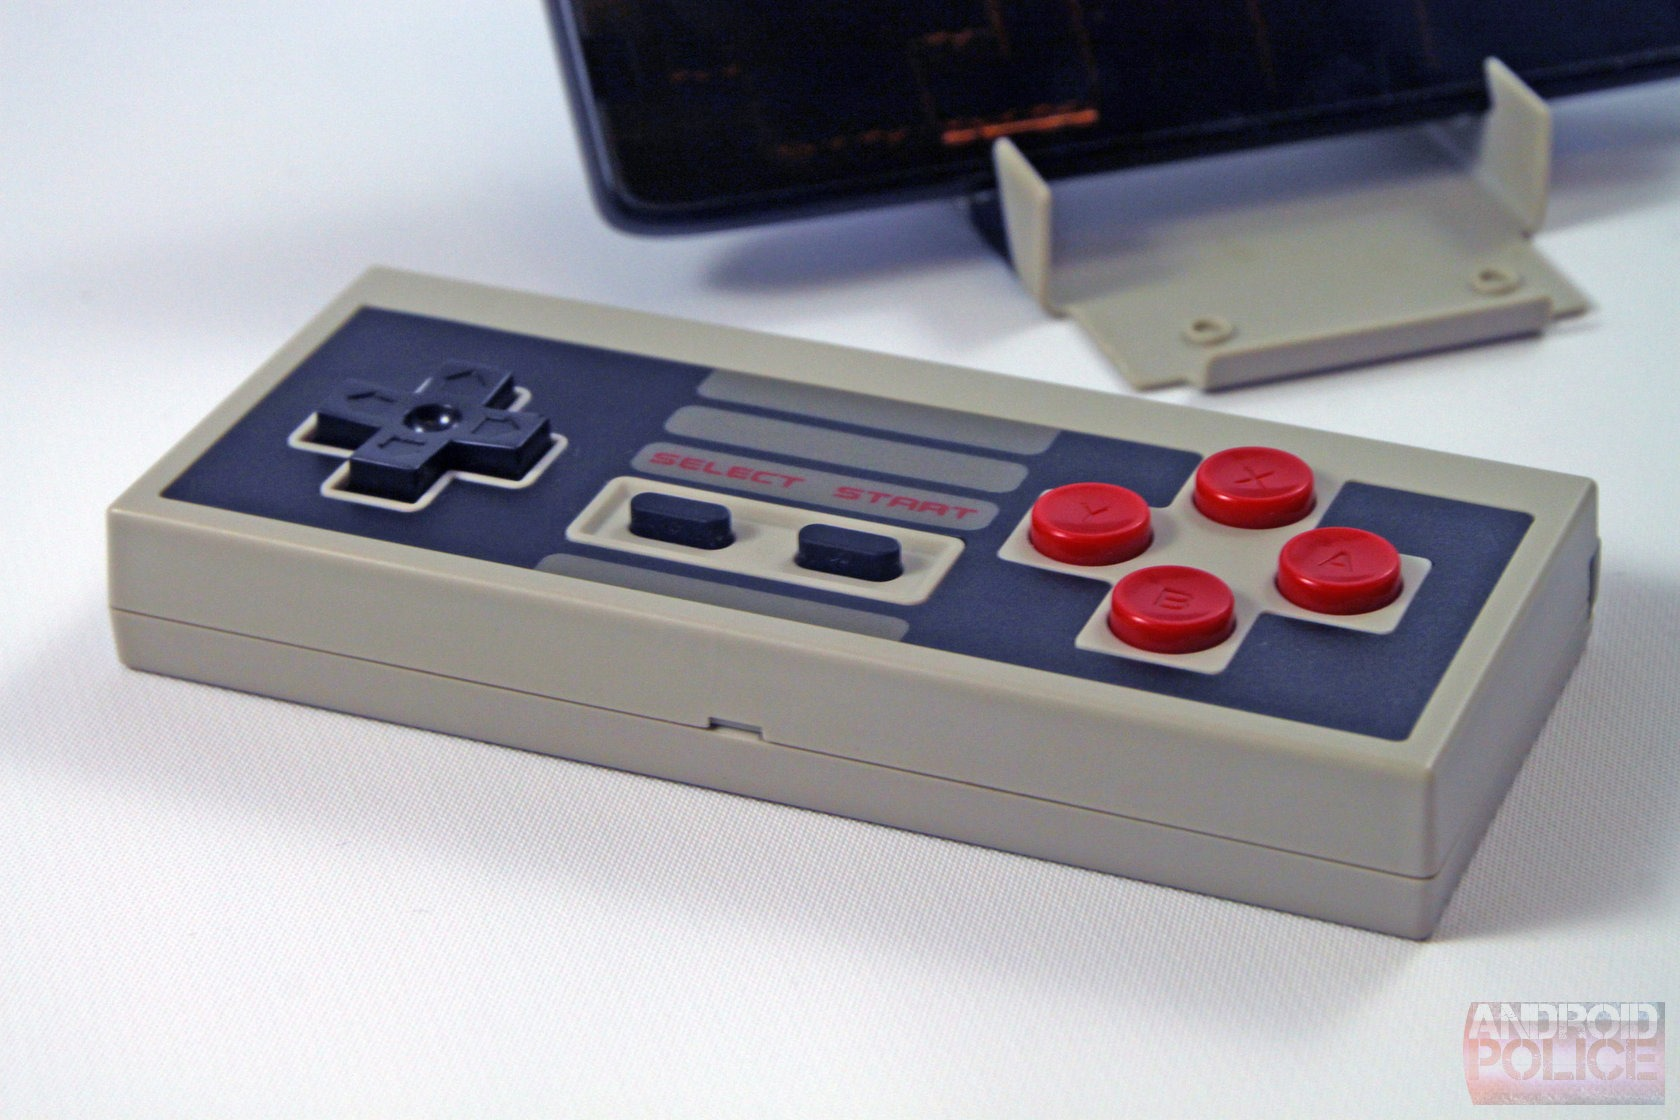 8BitDo NES30 Bluetooth Controller Review: Everything Old Is